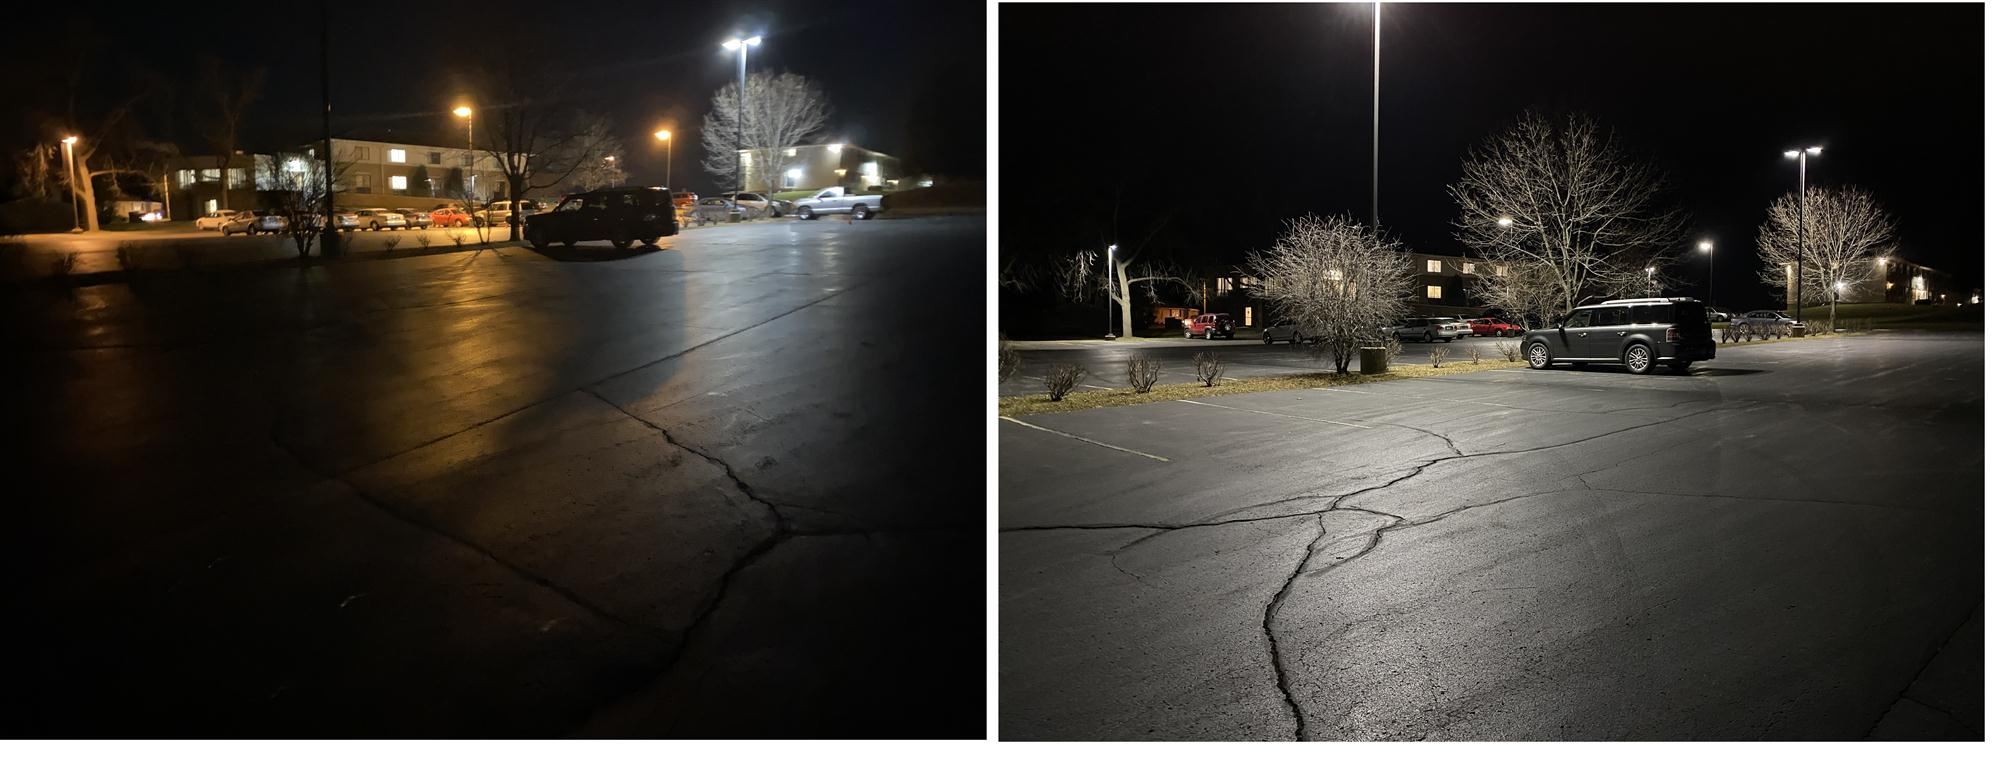 Outdoor University LED lighting for parking lot